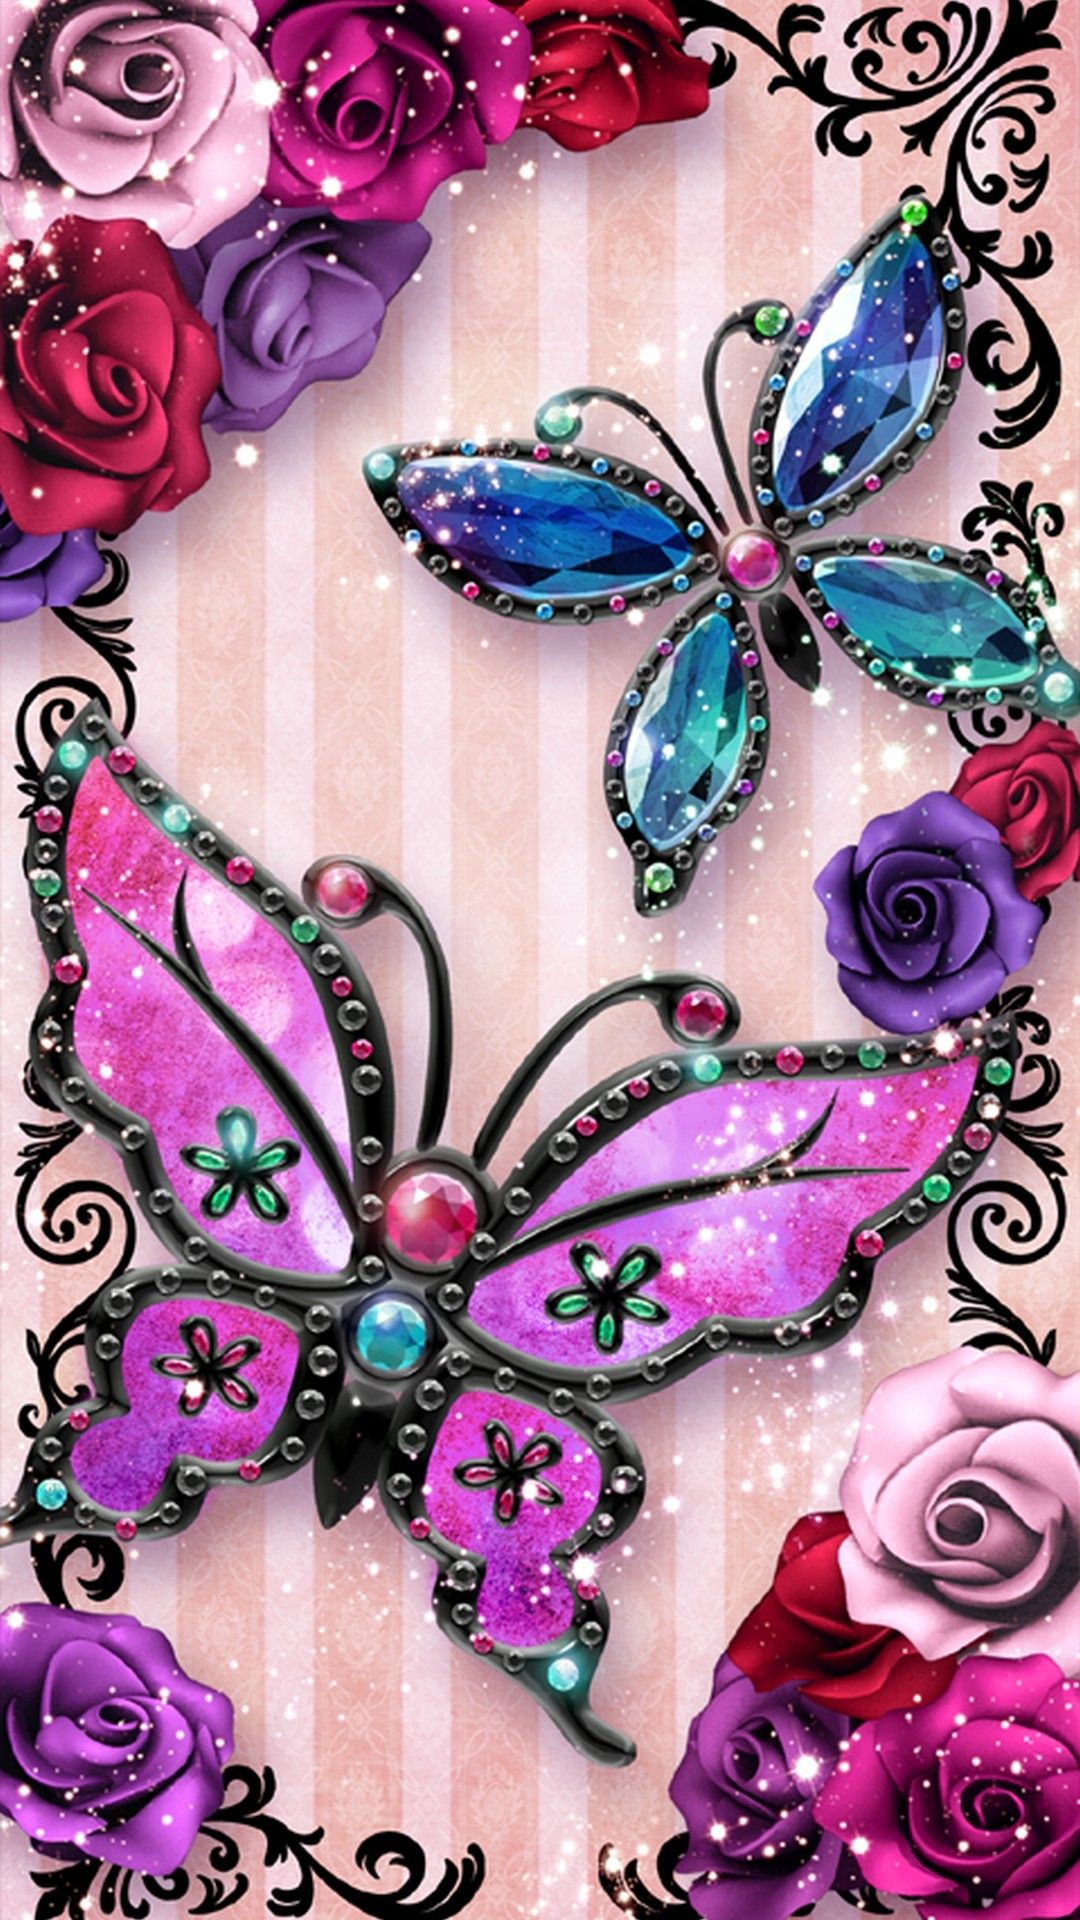 Visit Site To Download Wallpaper Cute For Iphone Backgrounds Cute Butterfly Iphone 6 Wallpaper 2019 Pink Wallpaper Iphone Butterfly Wallpaper Cute Butterfly